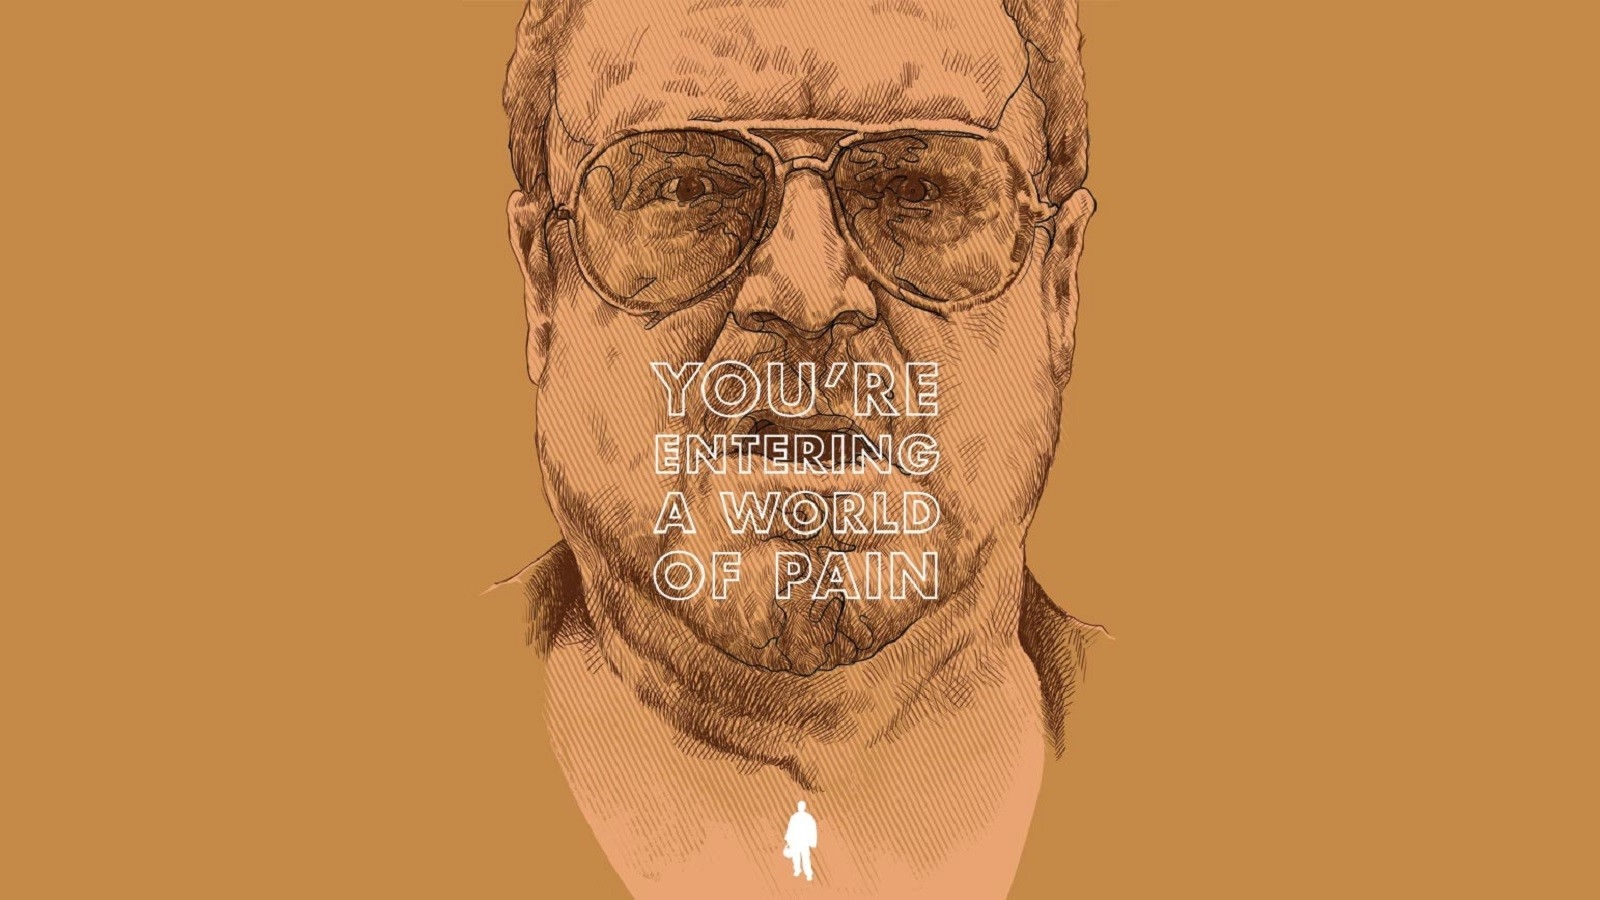 Cosmos Quotes Wallpaper Walter Sobchak Movies The Big Lebowski Quote Wallpapers